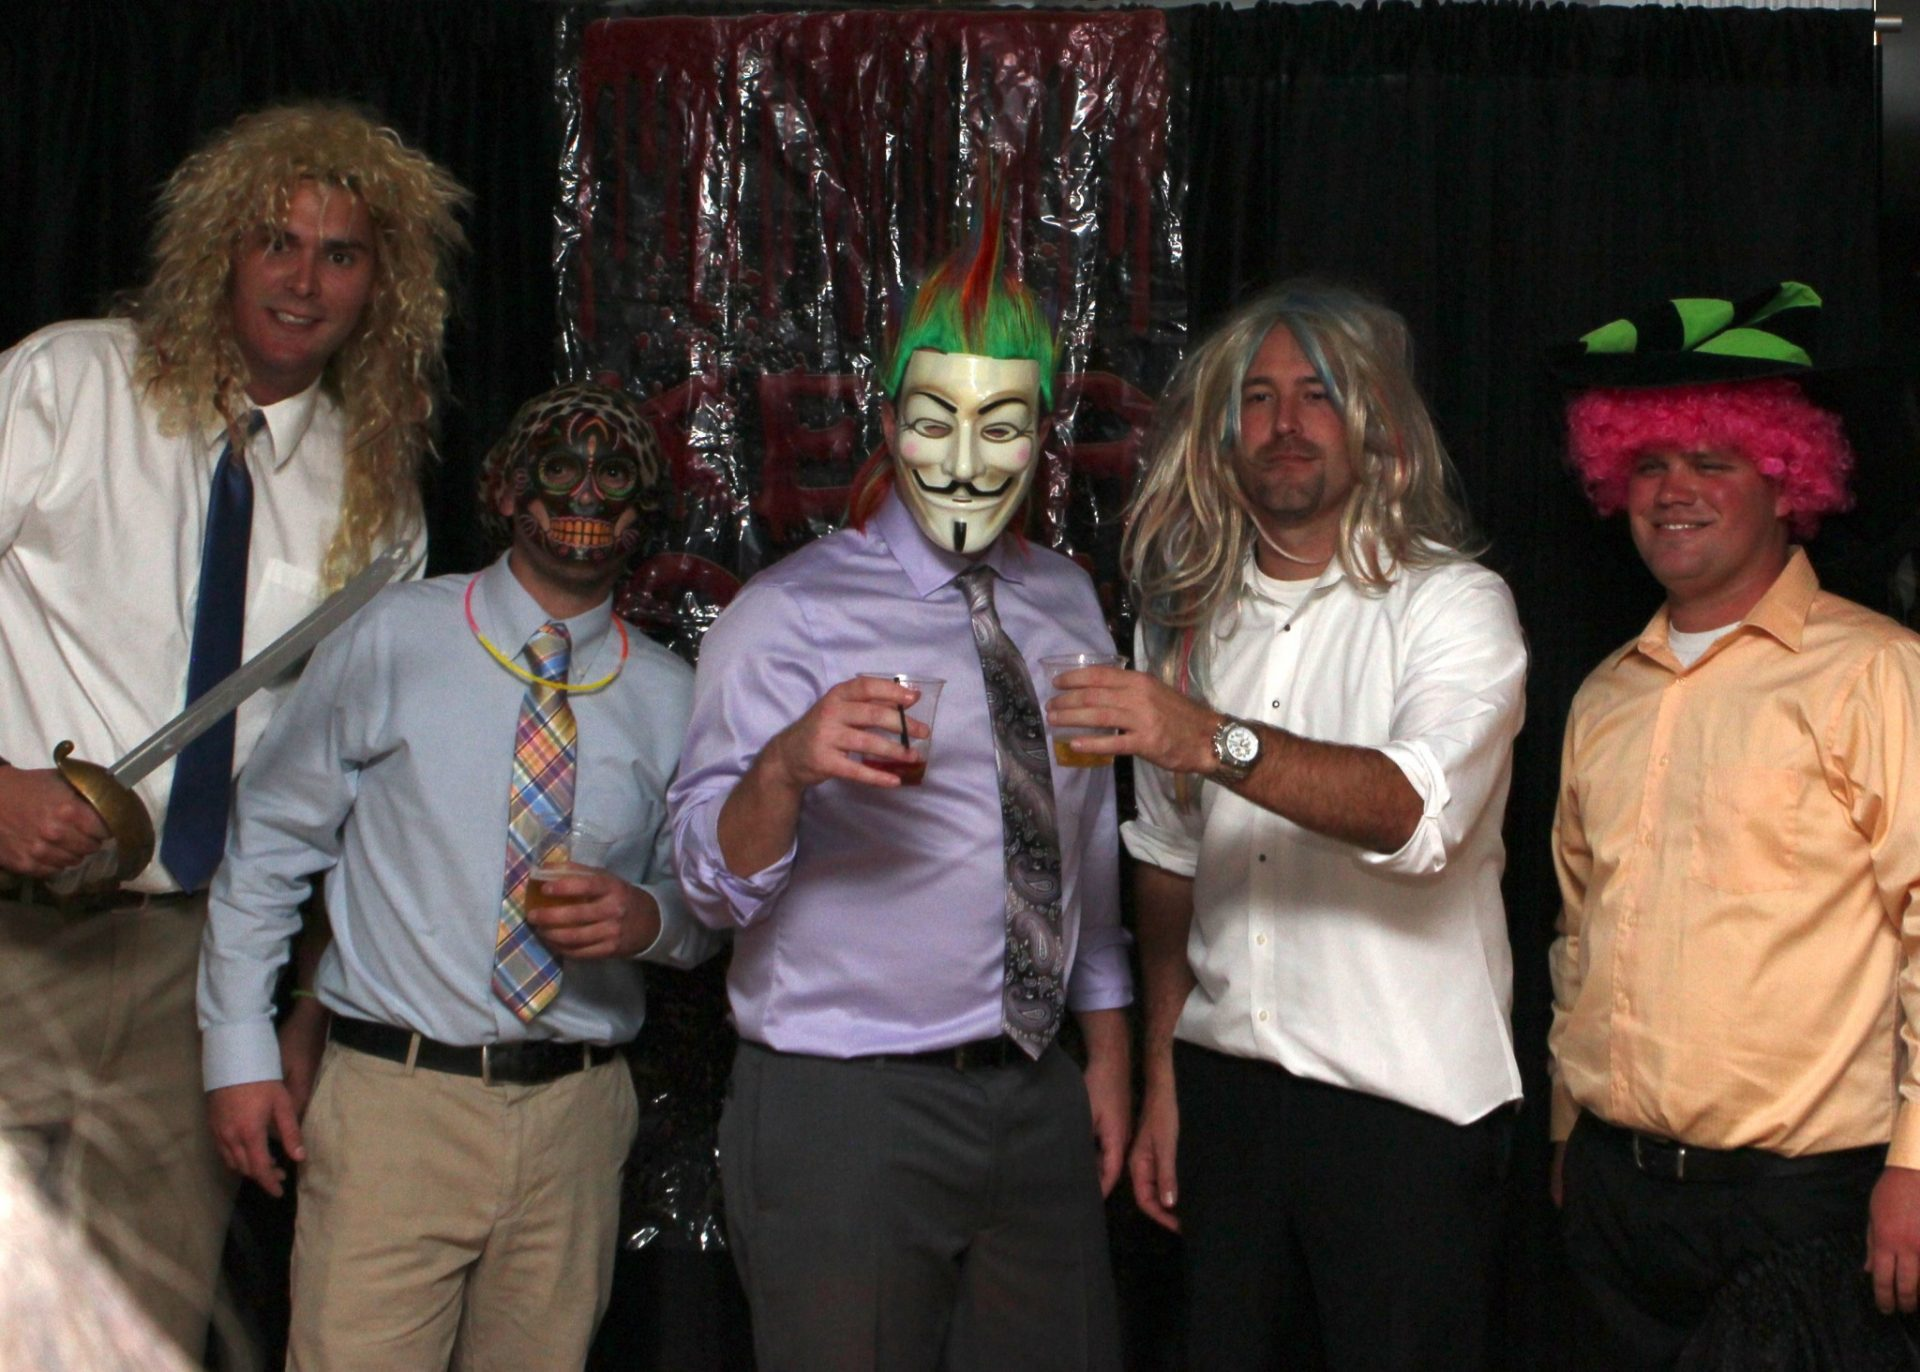 Guest photo booths are fun, especially at halloween weddings